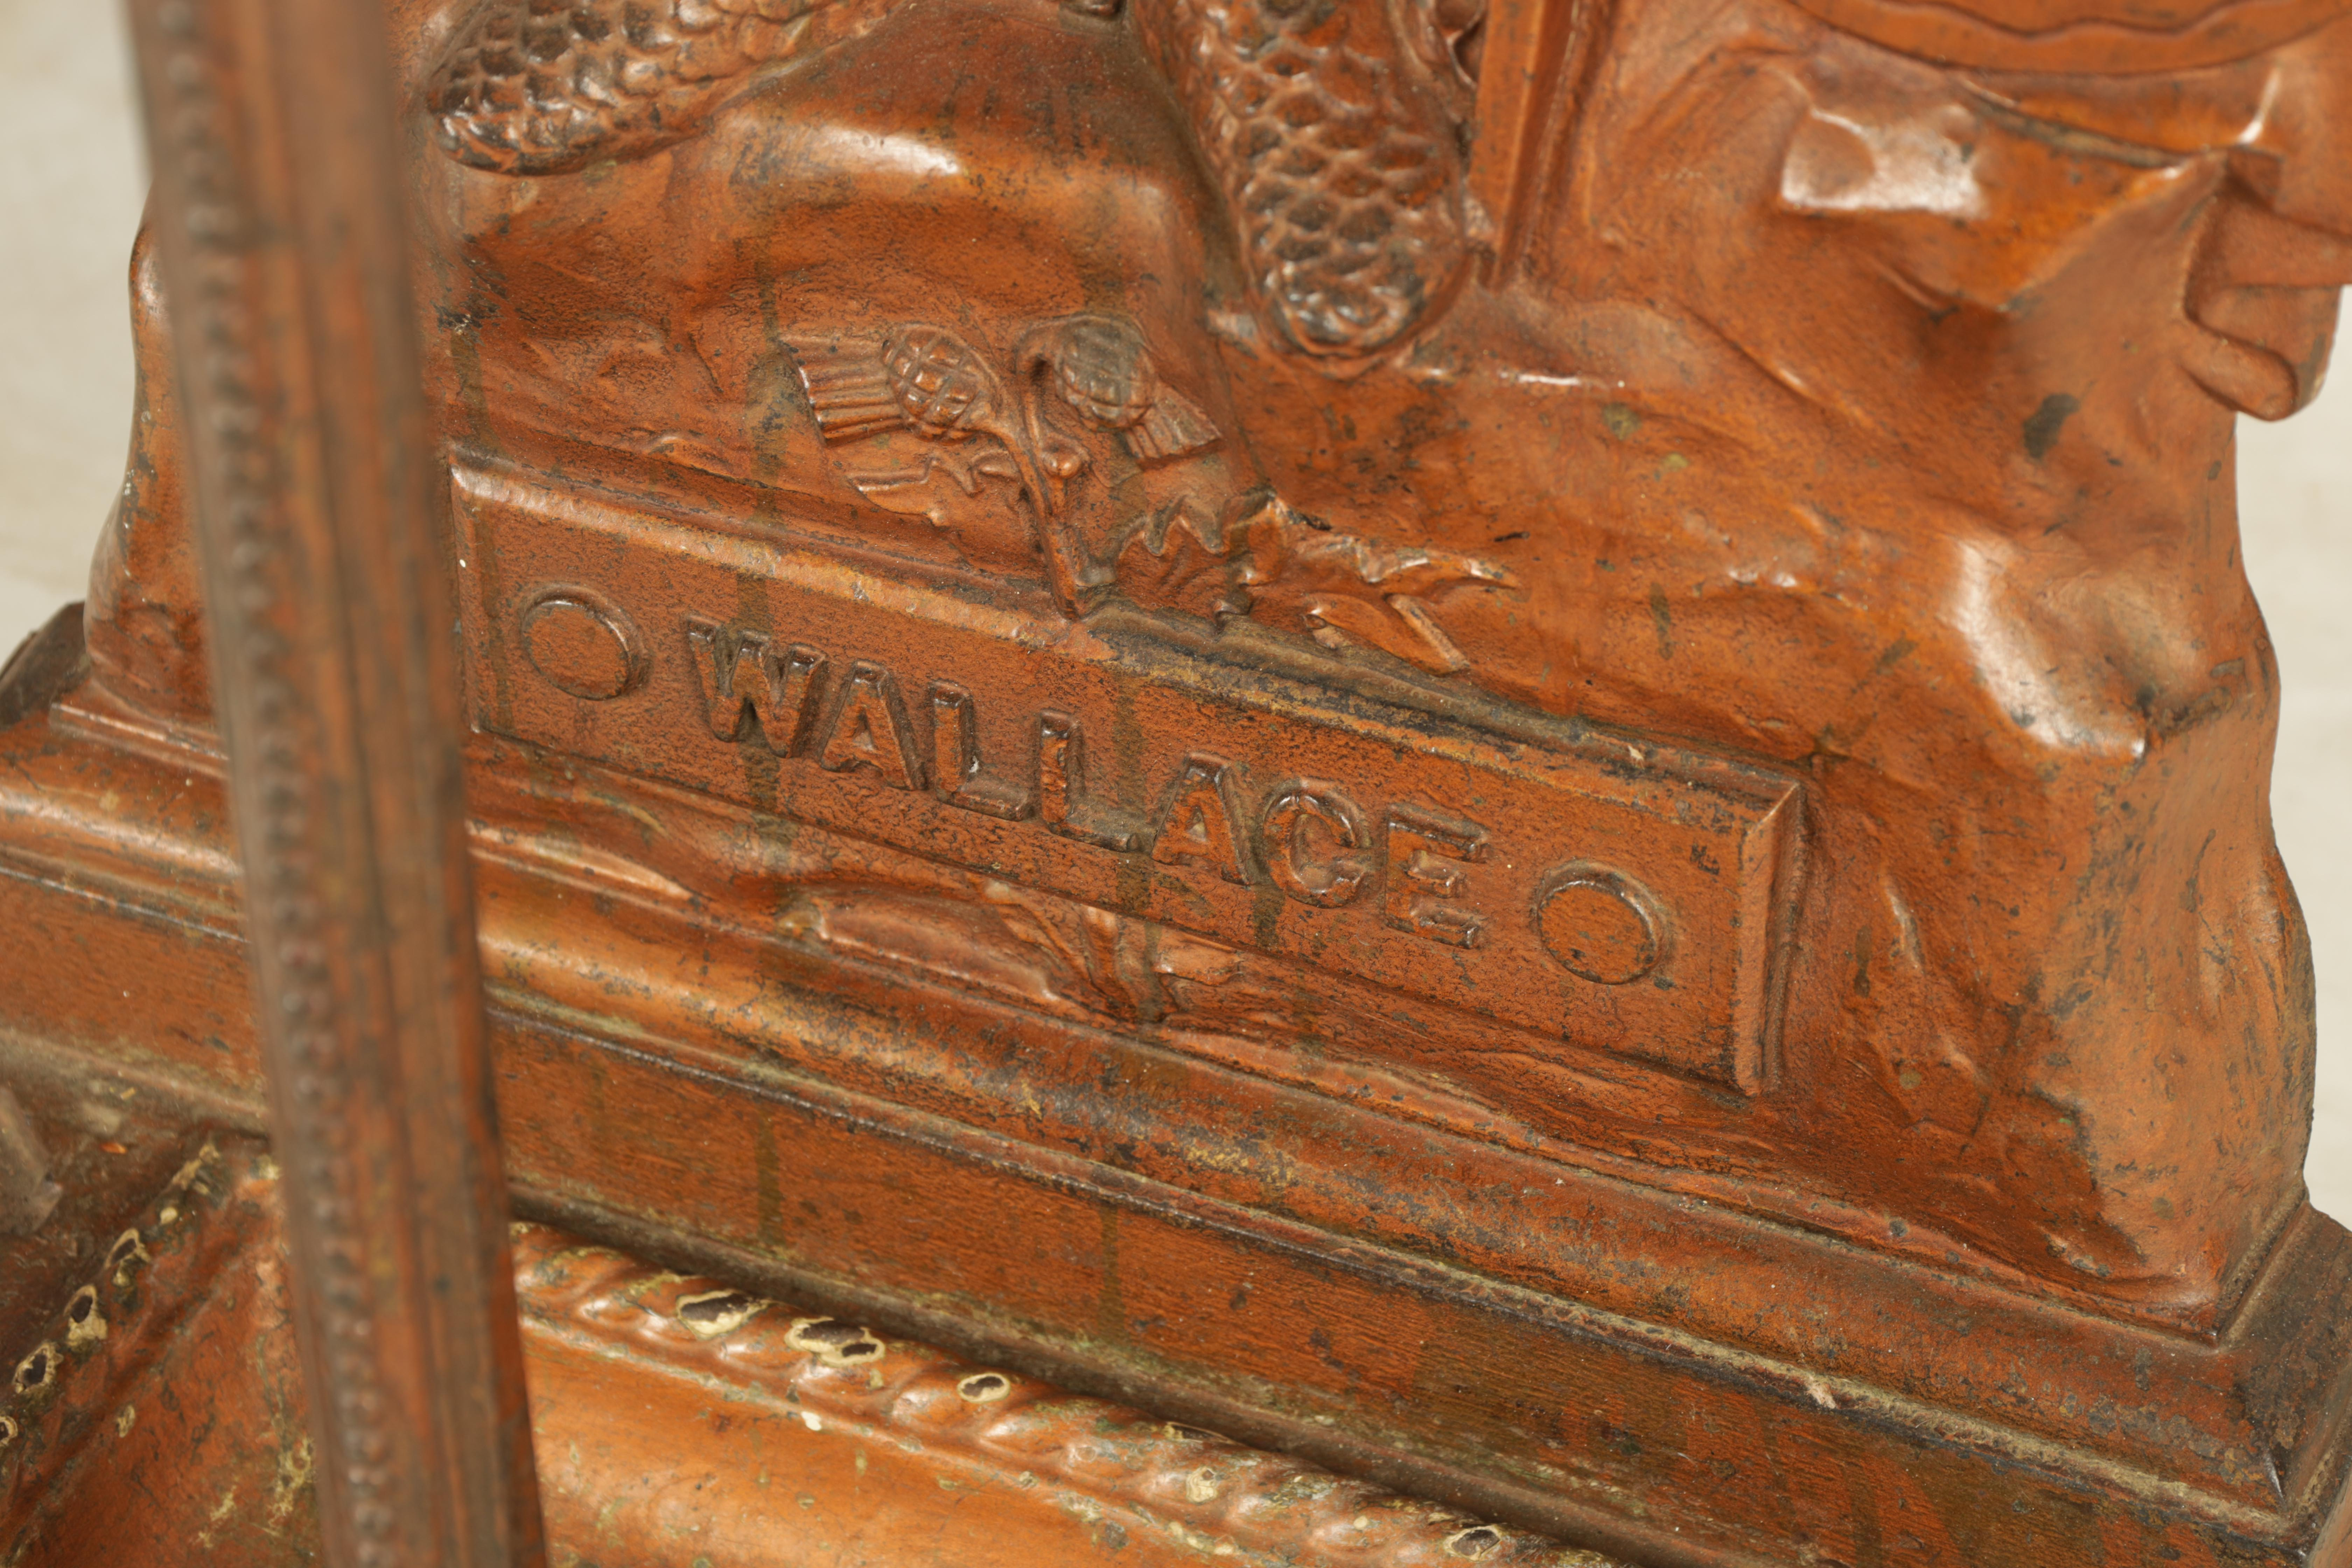 A LATE 19TH CENTURY PAINTED CAST IRON COALBROOKEDALE STYLE STICK STAND DEPICTING WILLIAM WALLACE - Image 4 of 5